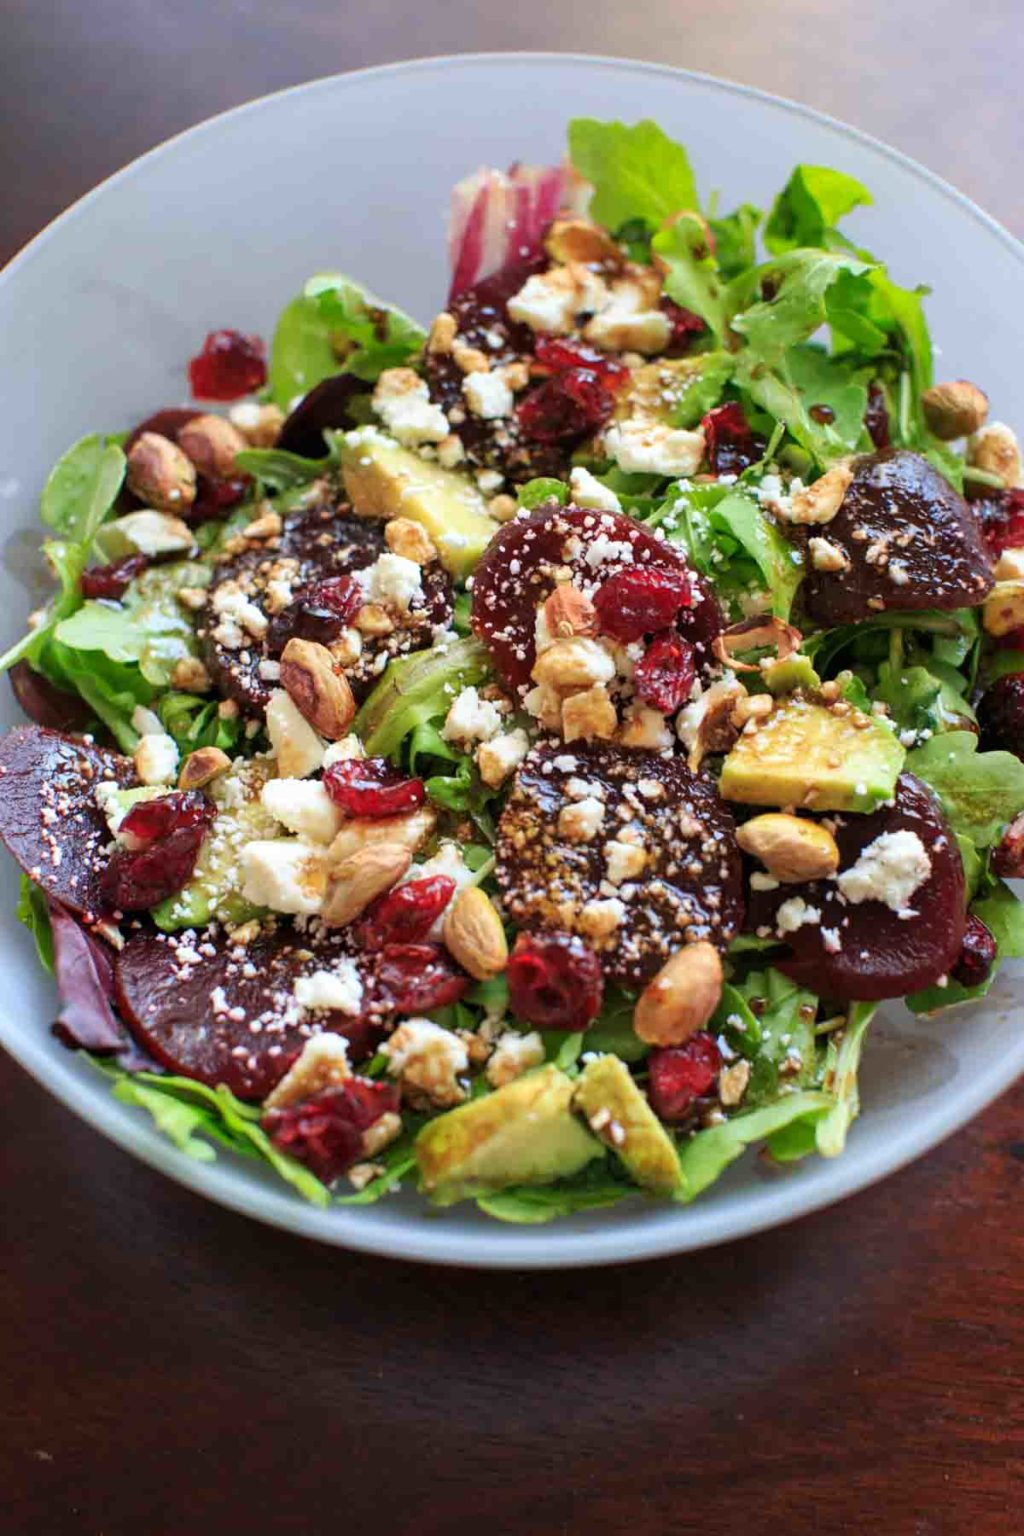 Roasted Beet Salad with Honey Balsamic Vinaigrette